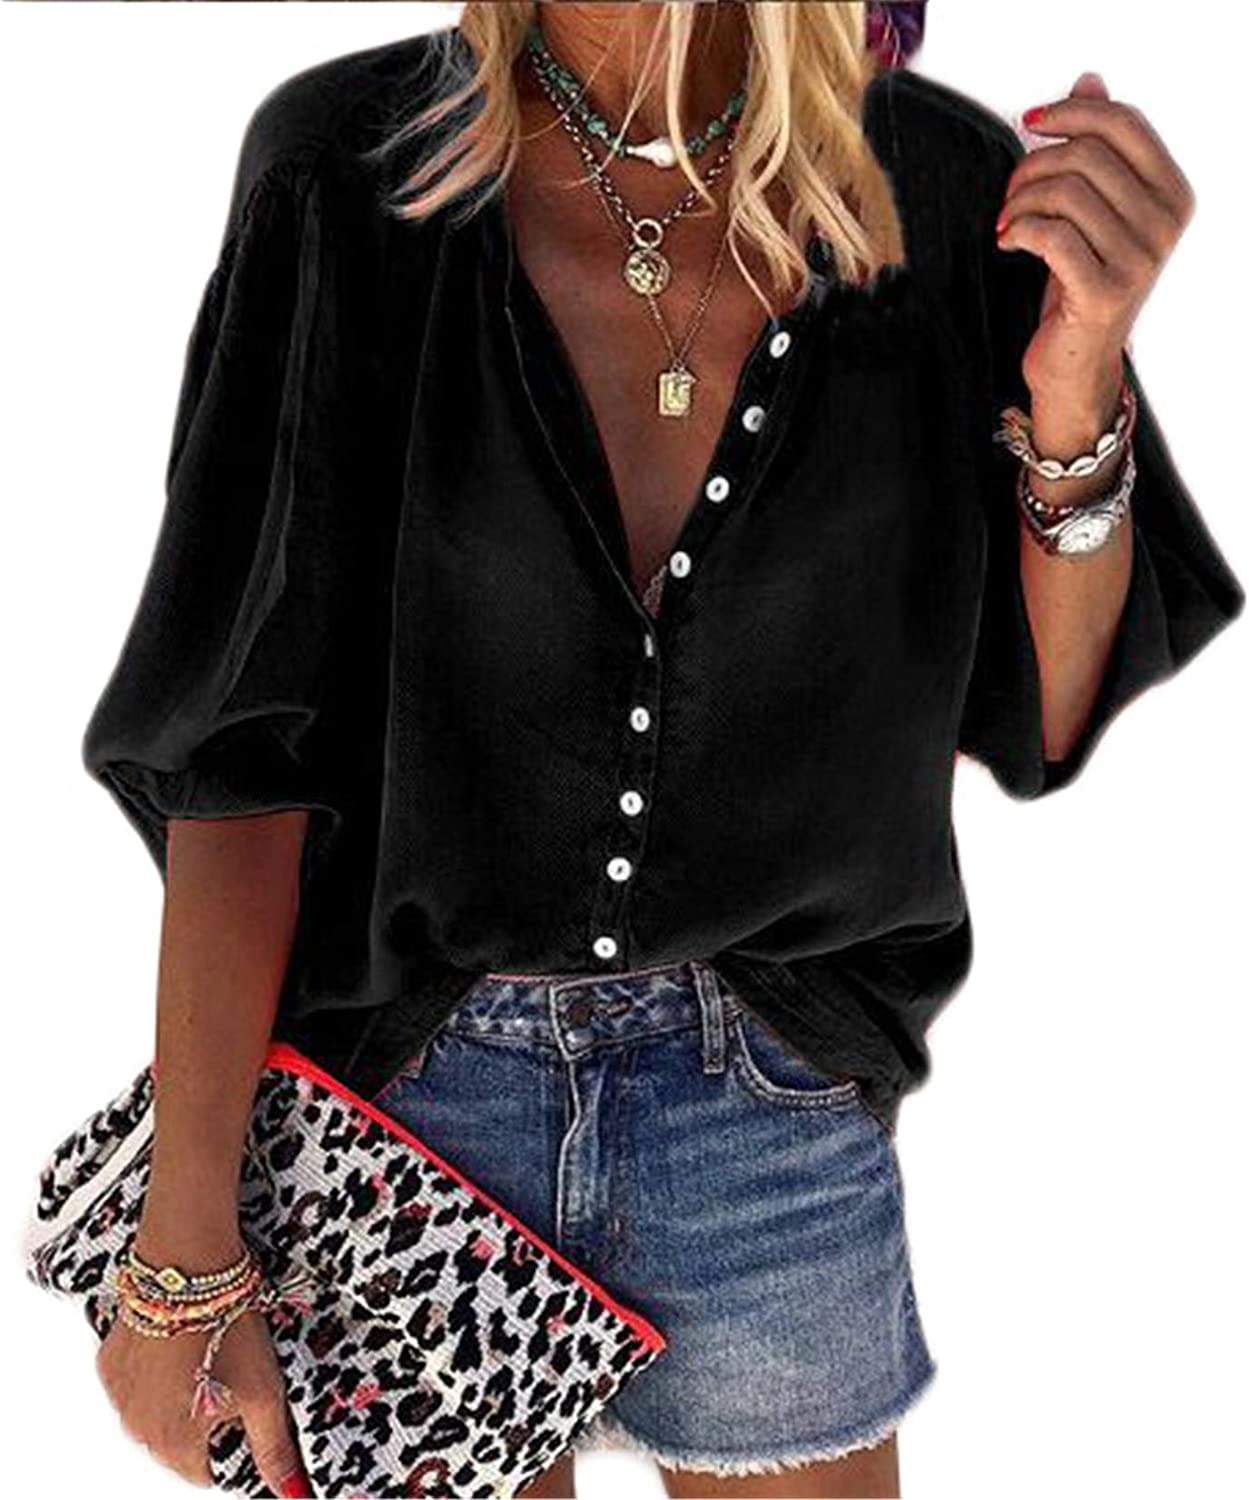 Andongnywell Blouses for Womens Casual V Neck Solid Color Womens Long Sleeve Button Down Tops Chiffon Shirts